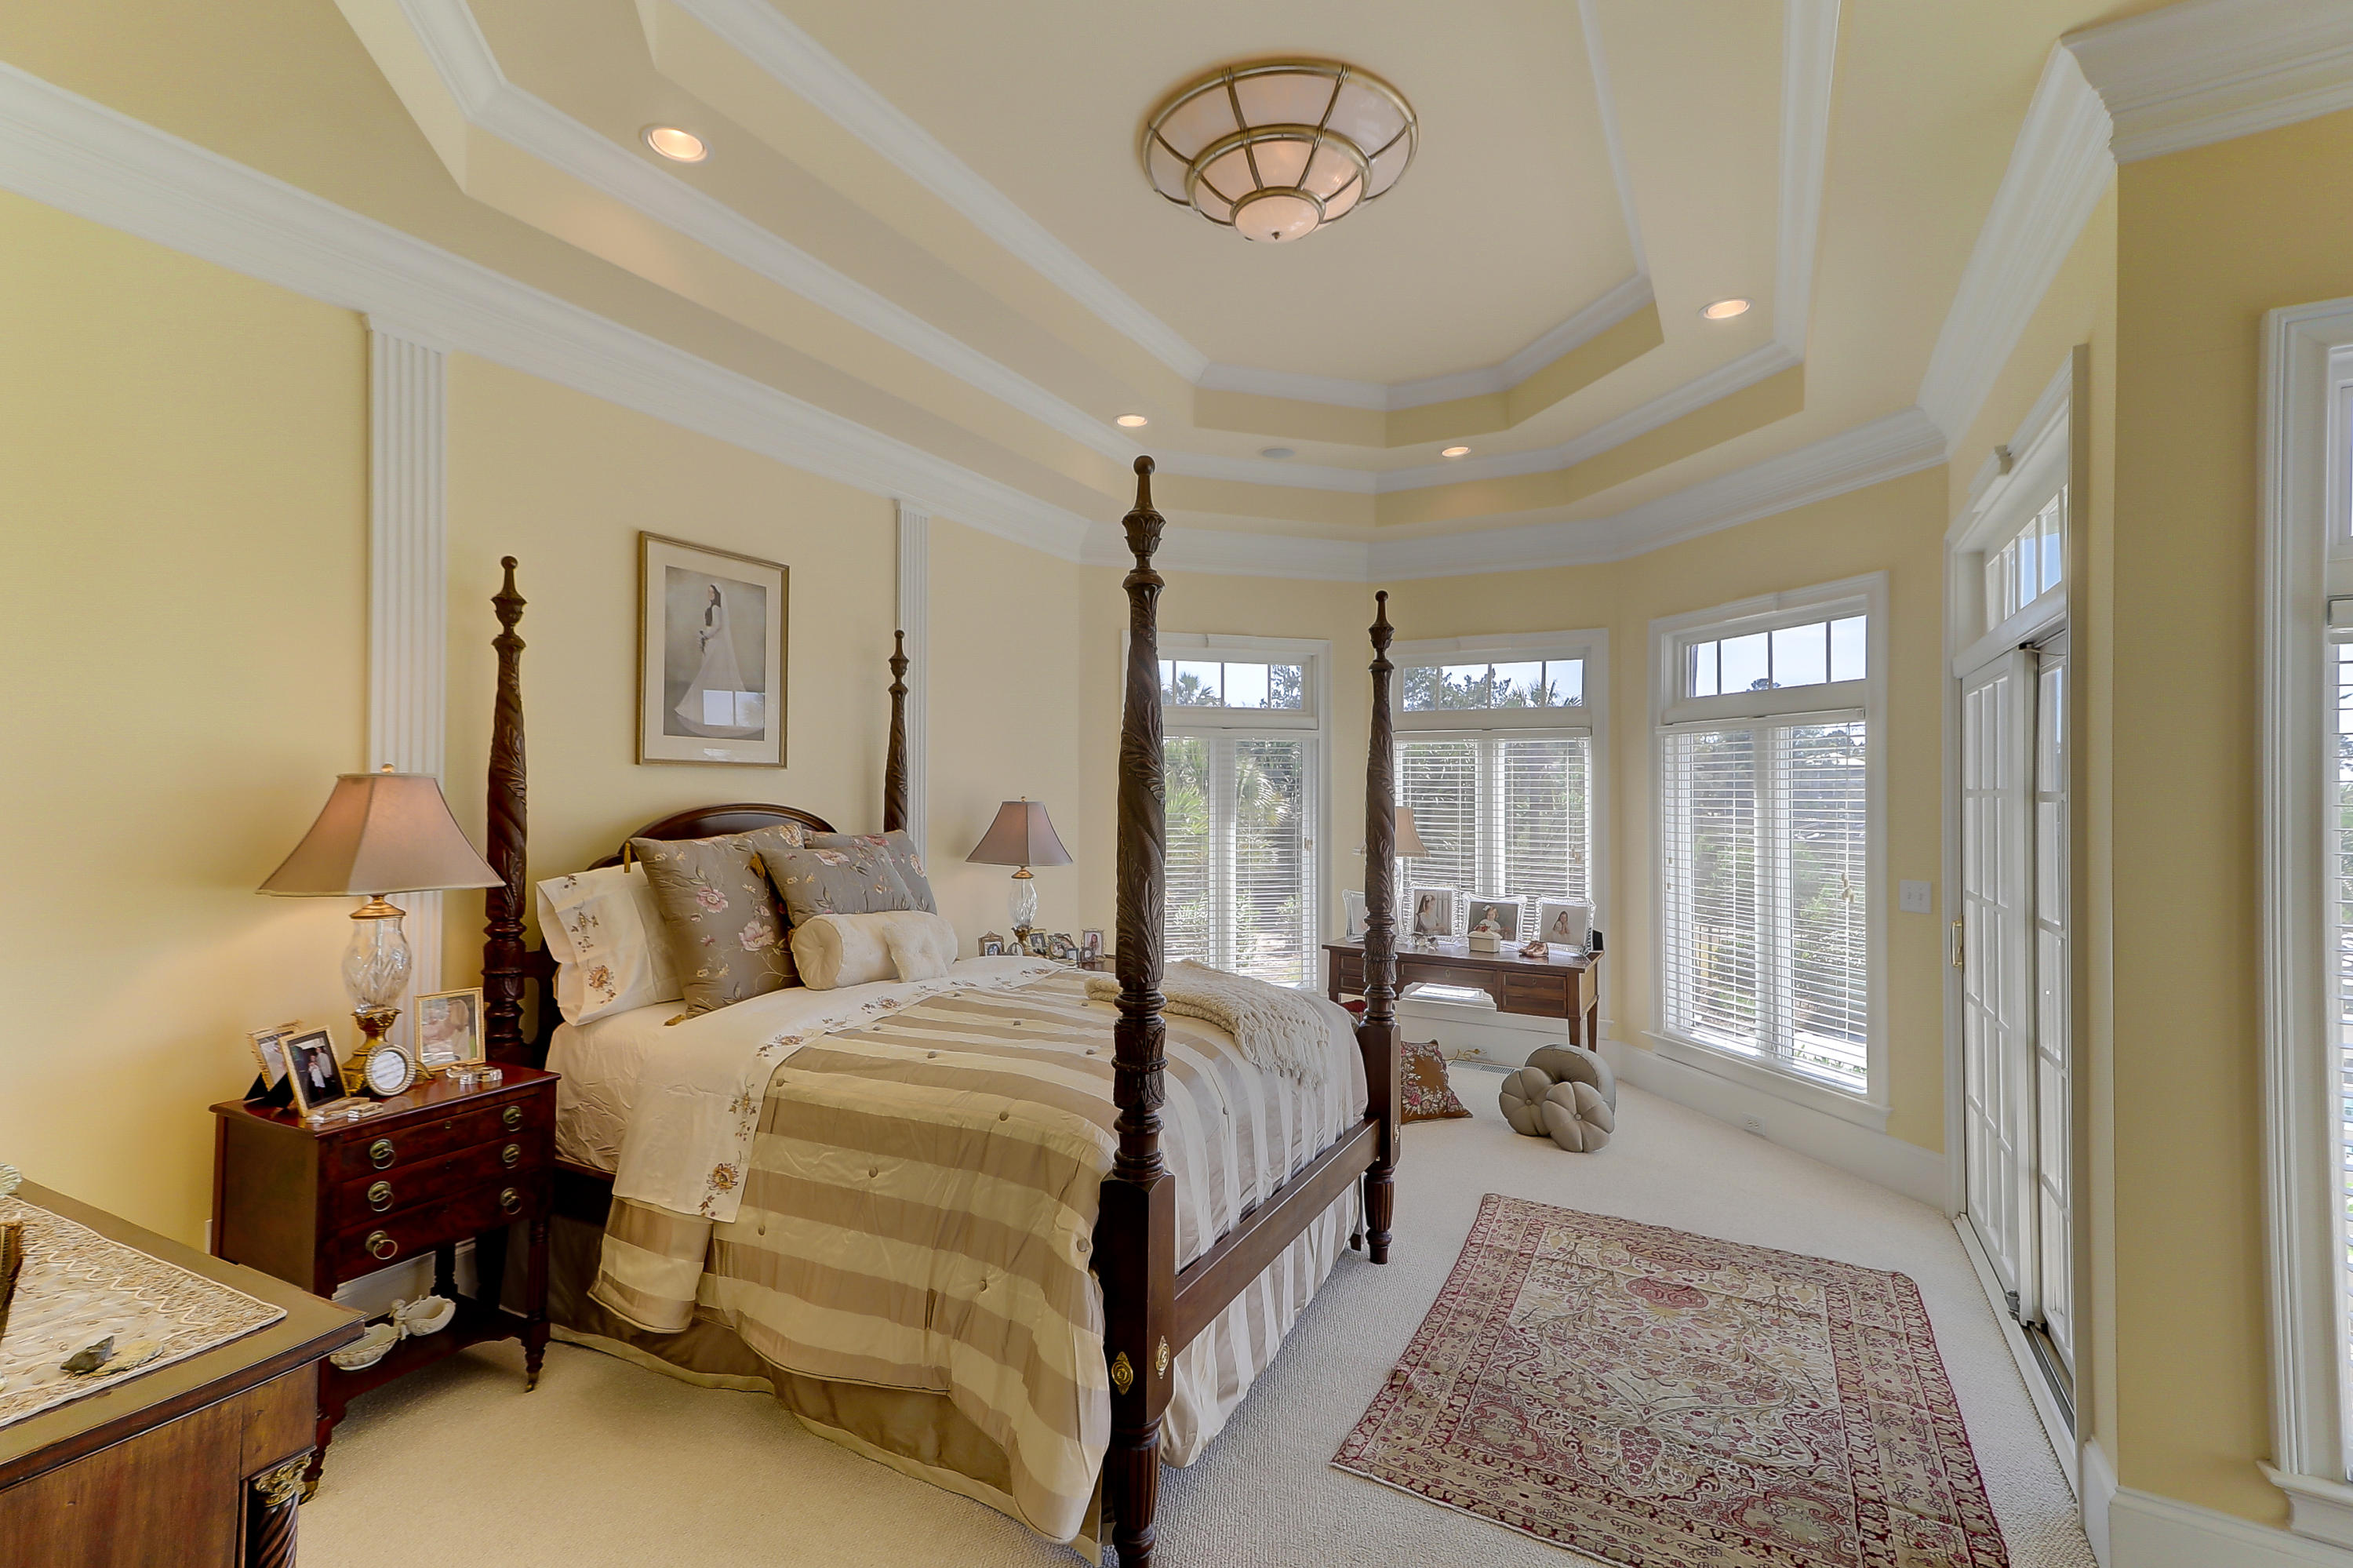 Dunes West Homes For Sale - 2019 Shell Ring, Mount Pleasant, SC - 18